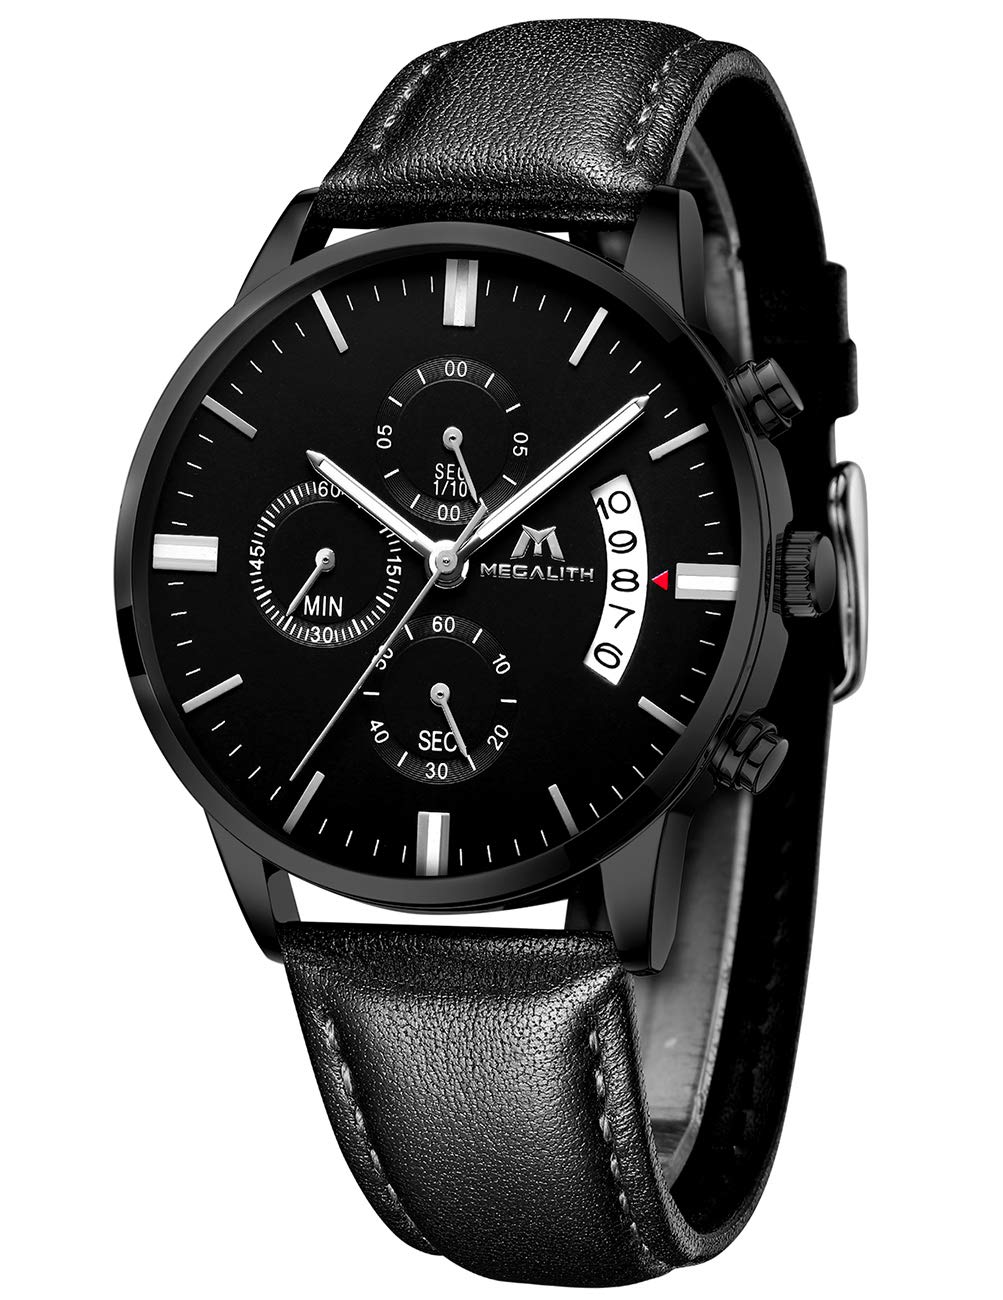 MEGALITH Mens Watches Chronograph Thin Watches for Men Waterproof Sports Analogue Watch Luminous Date Leather Mens Wrist Watches Business Quartz